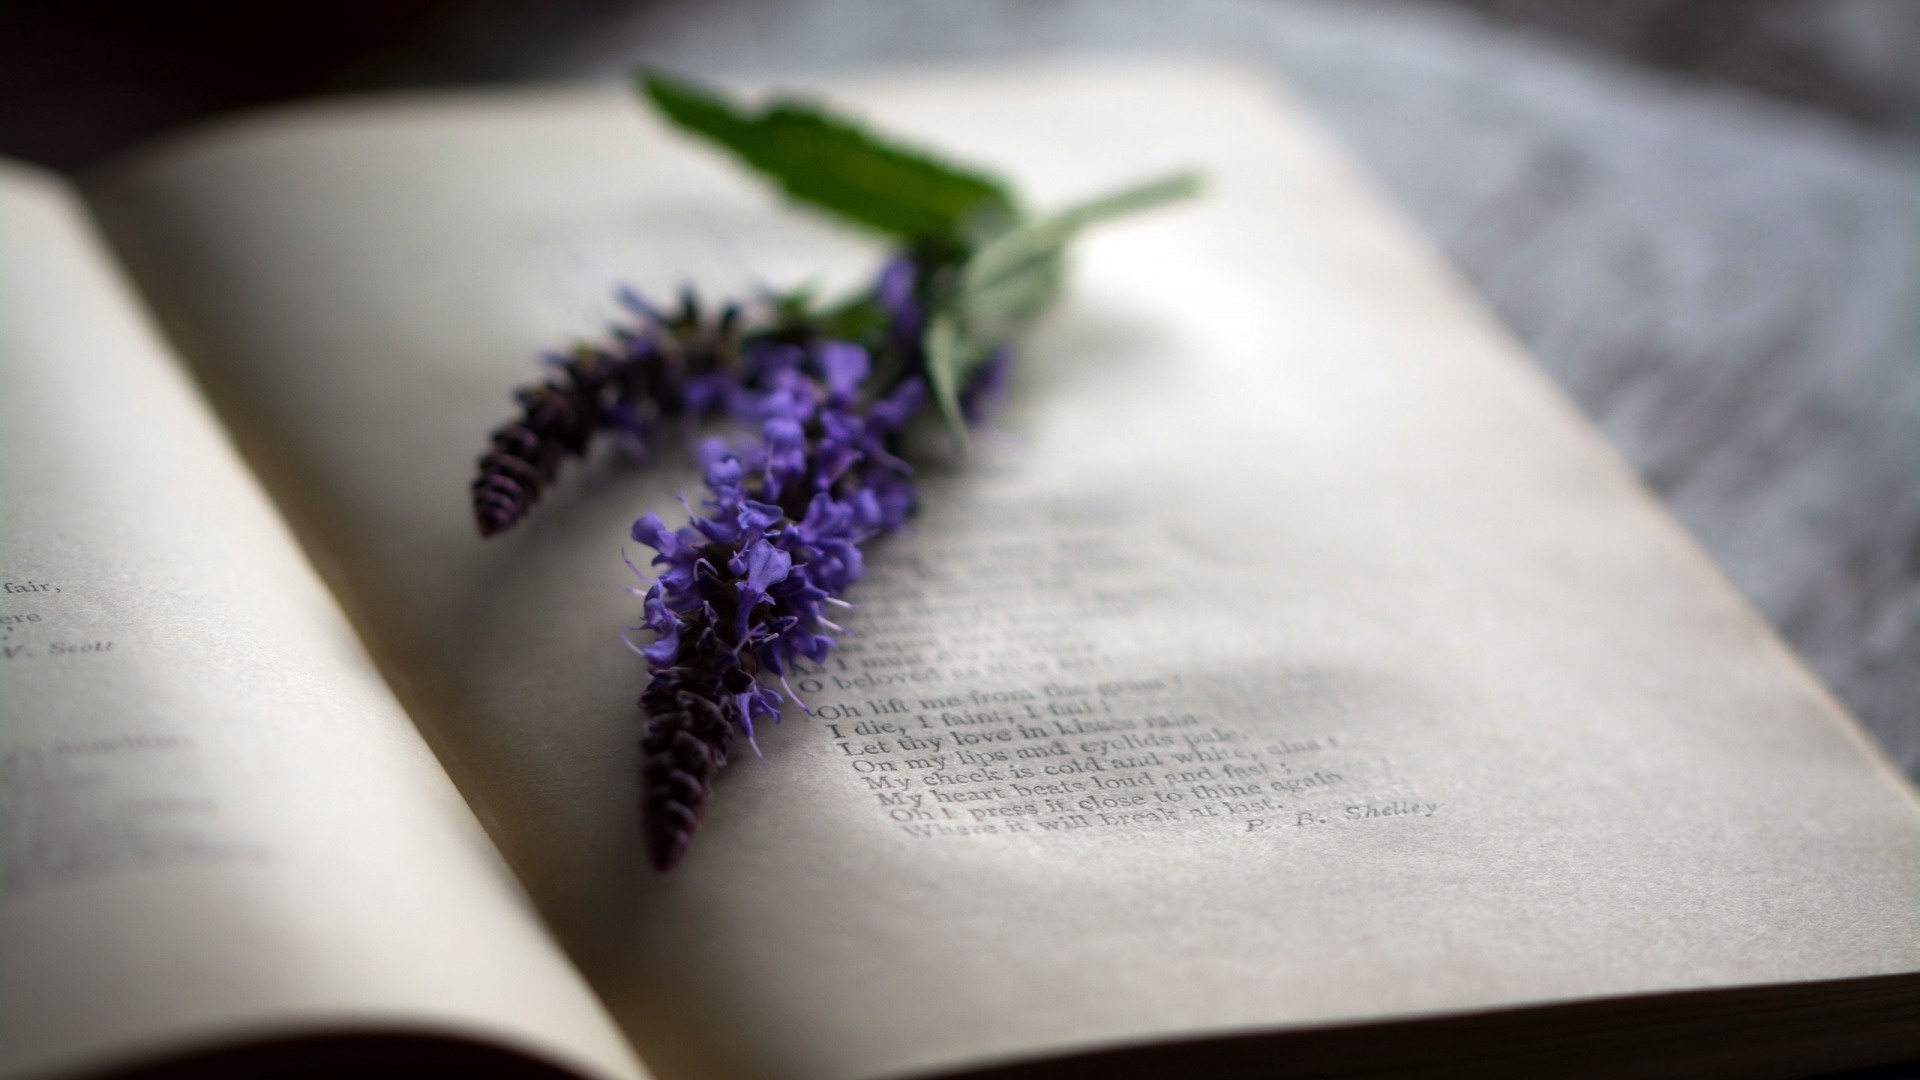 Book And Flower Pic